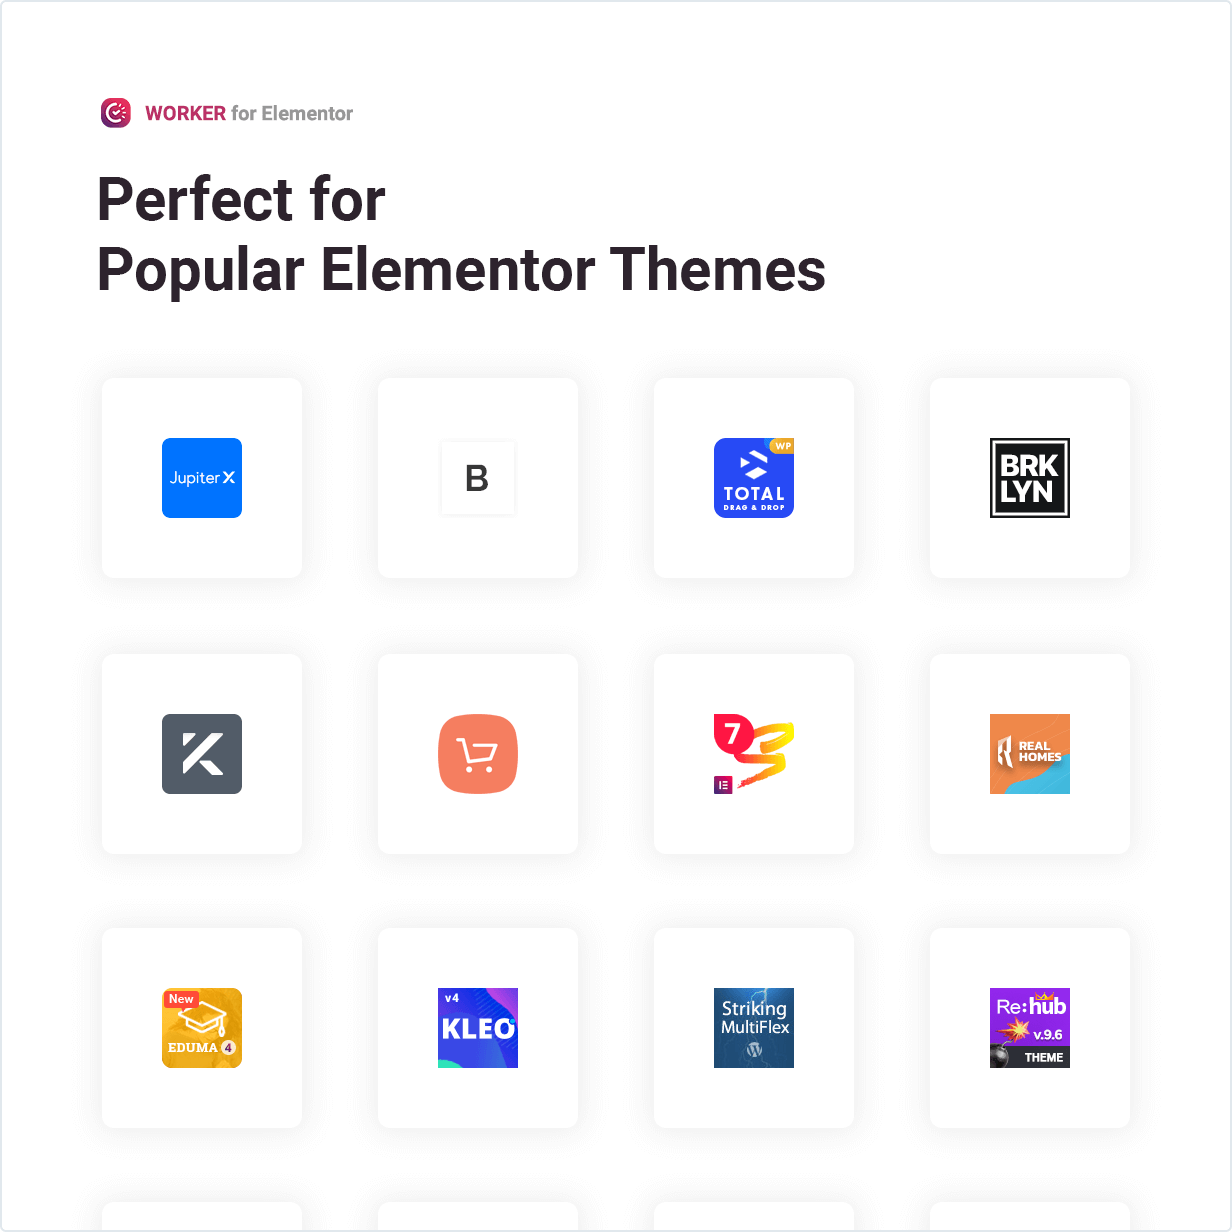 Worker widget is Perfect for Popular Elementor Themes